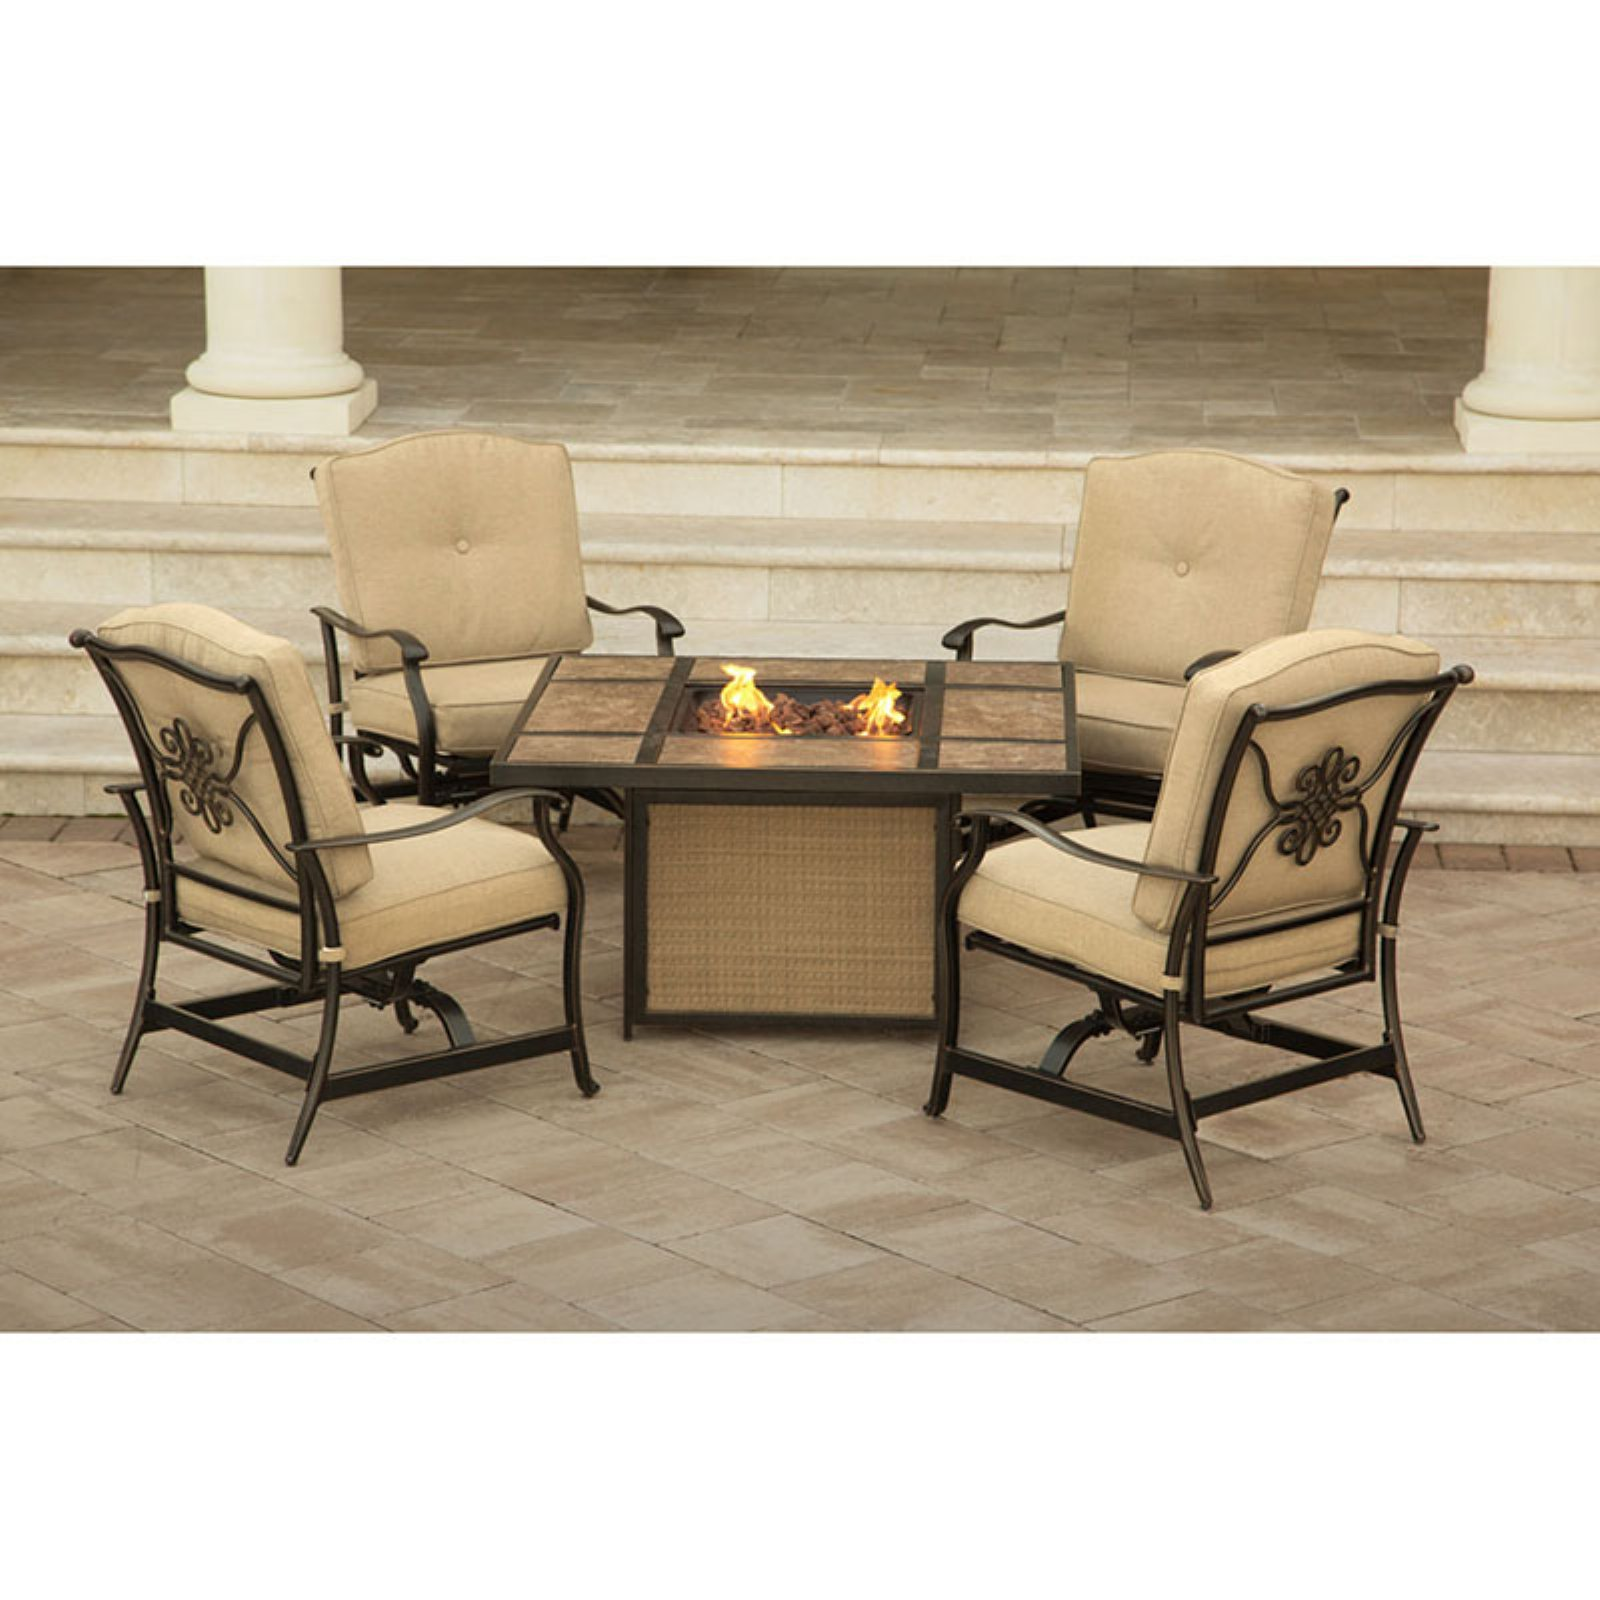 Hanover Traditions 5-Piece Outdoor Lounge Set Natural Oat TRADTILE5PCFP